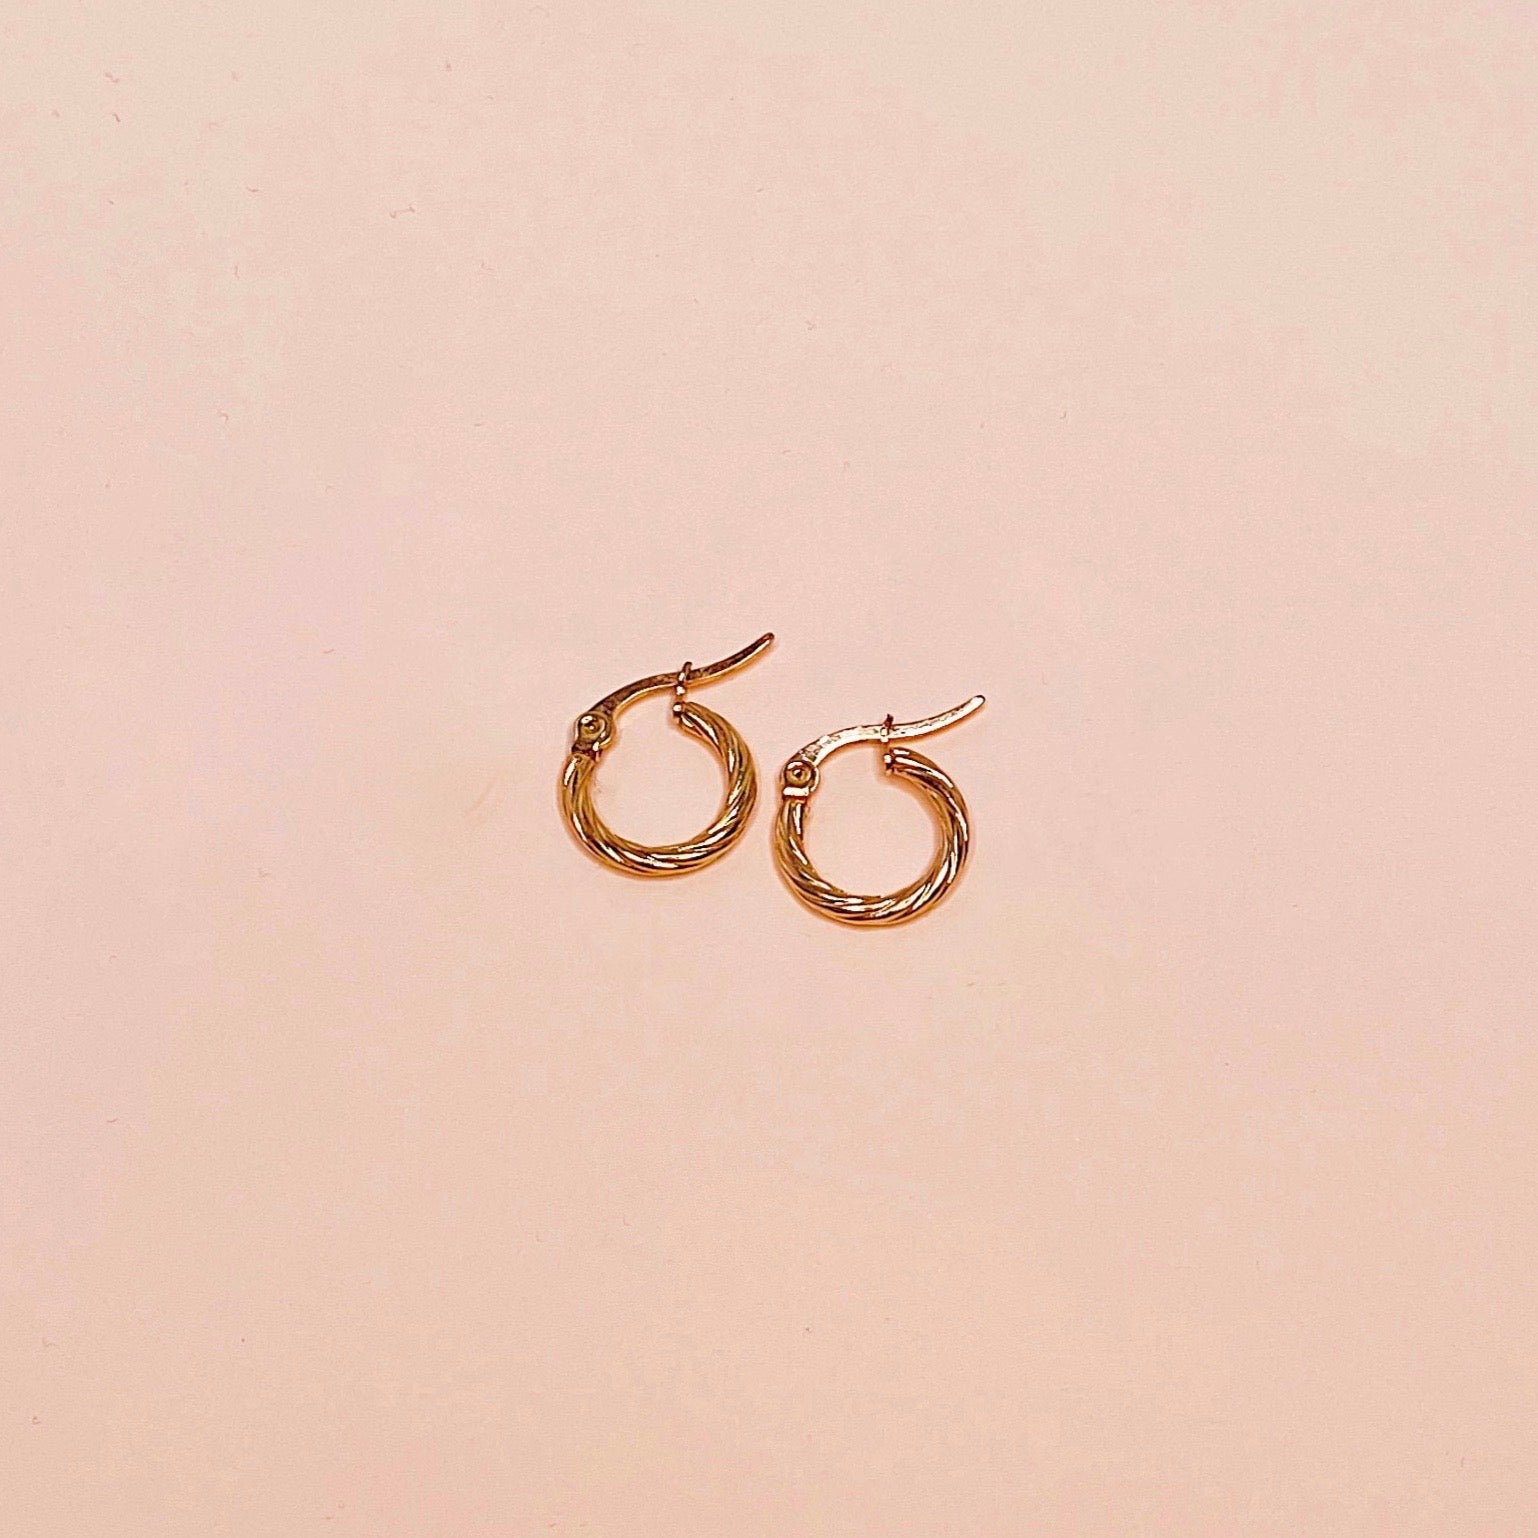 Mini Textured Circle Hoop Earrings